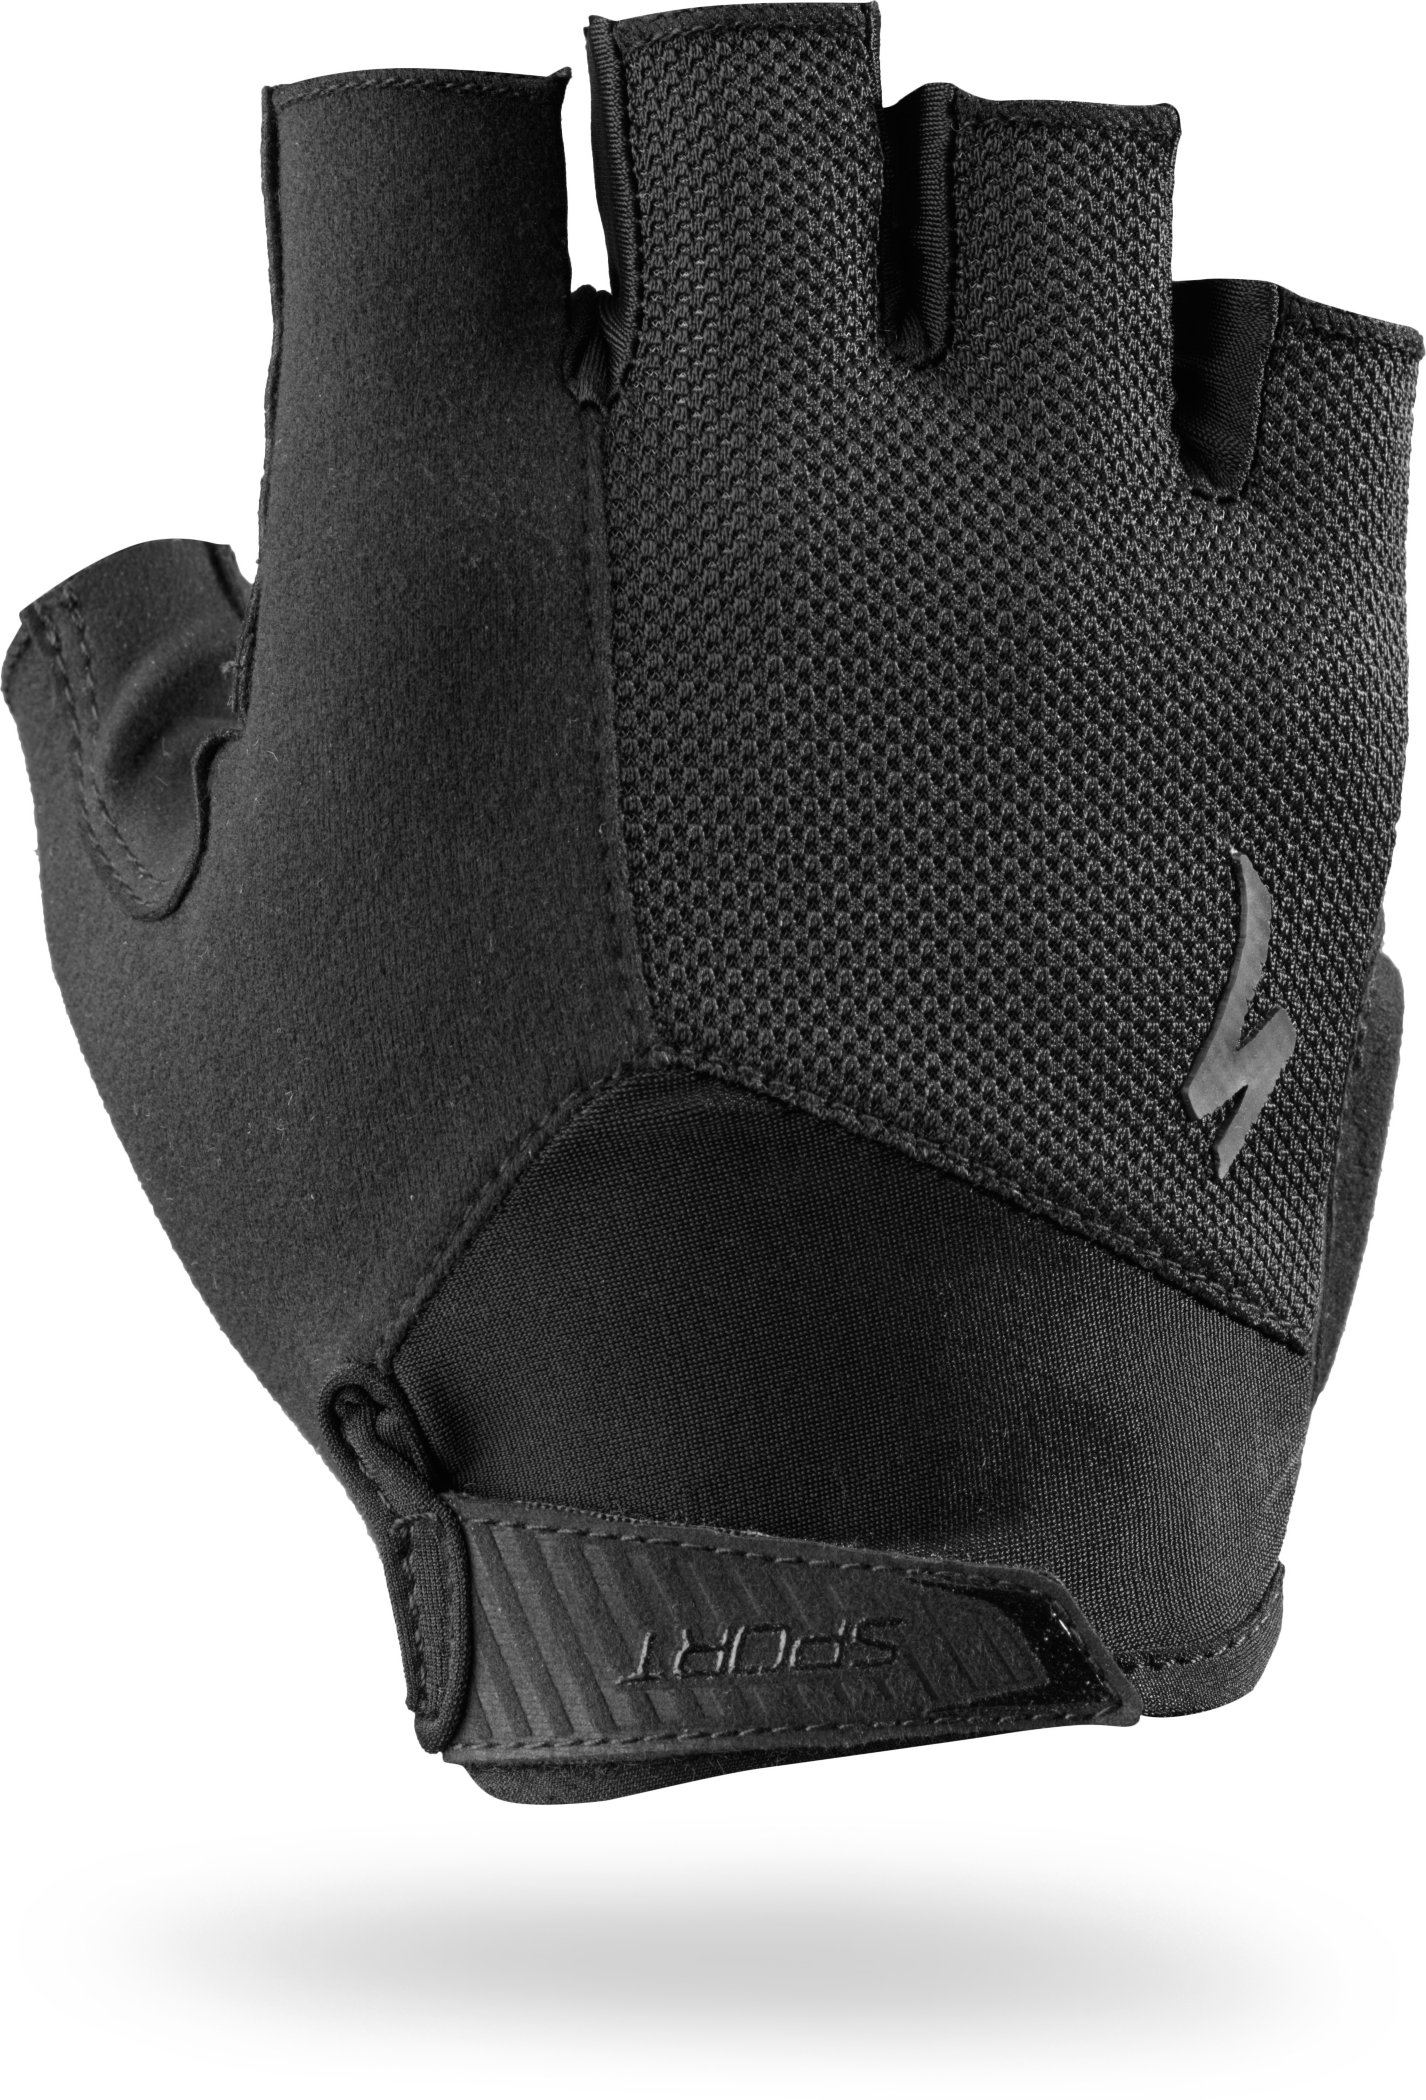 SPECIALIZED BG SPORT GLOVE SF BLK L - Alpha Bikes